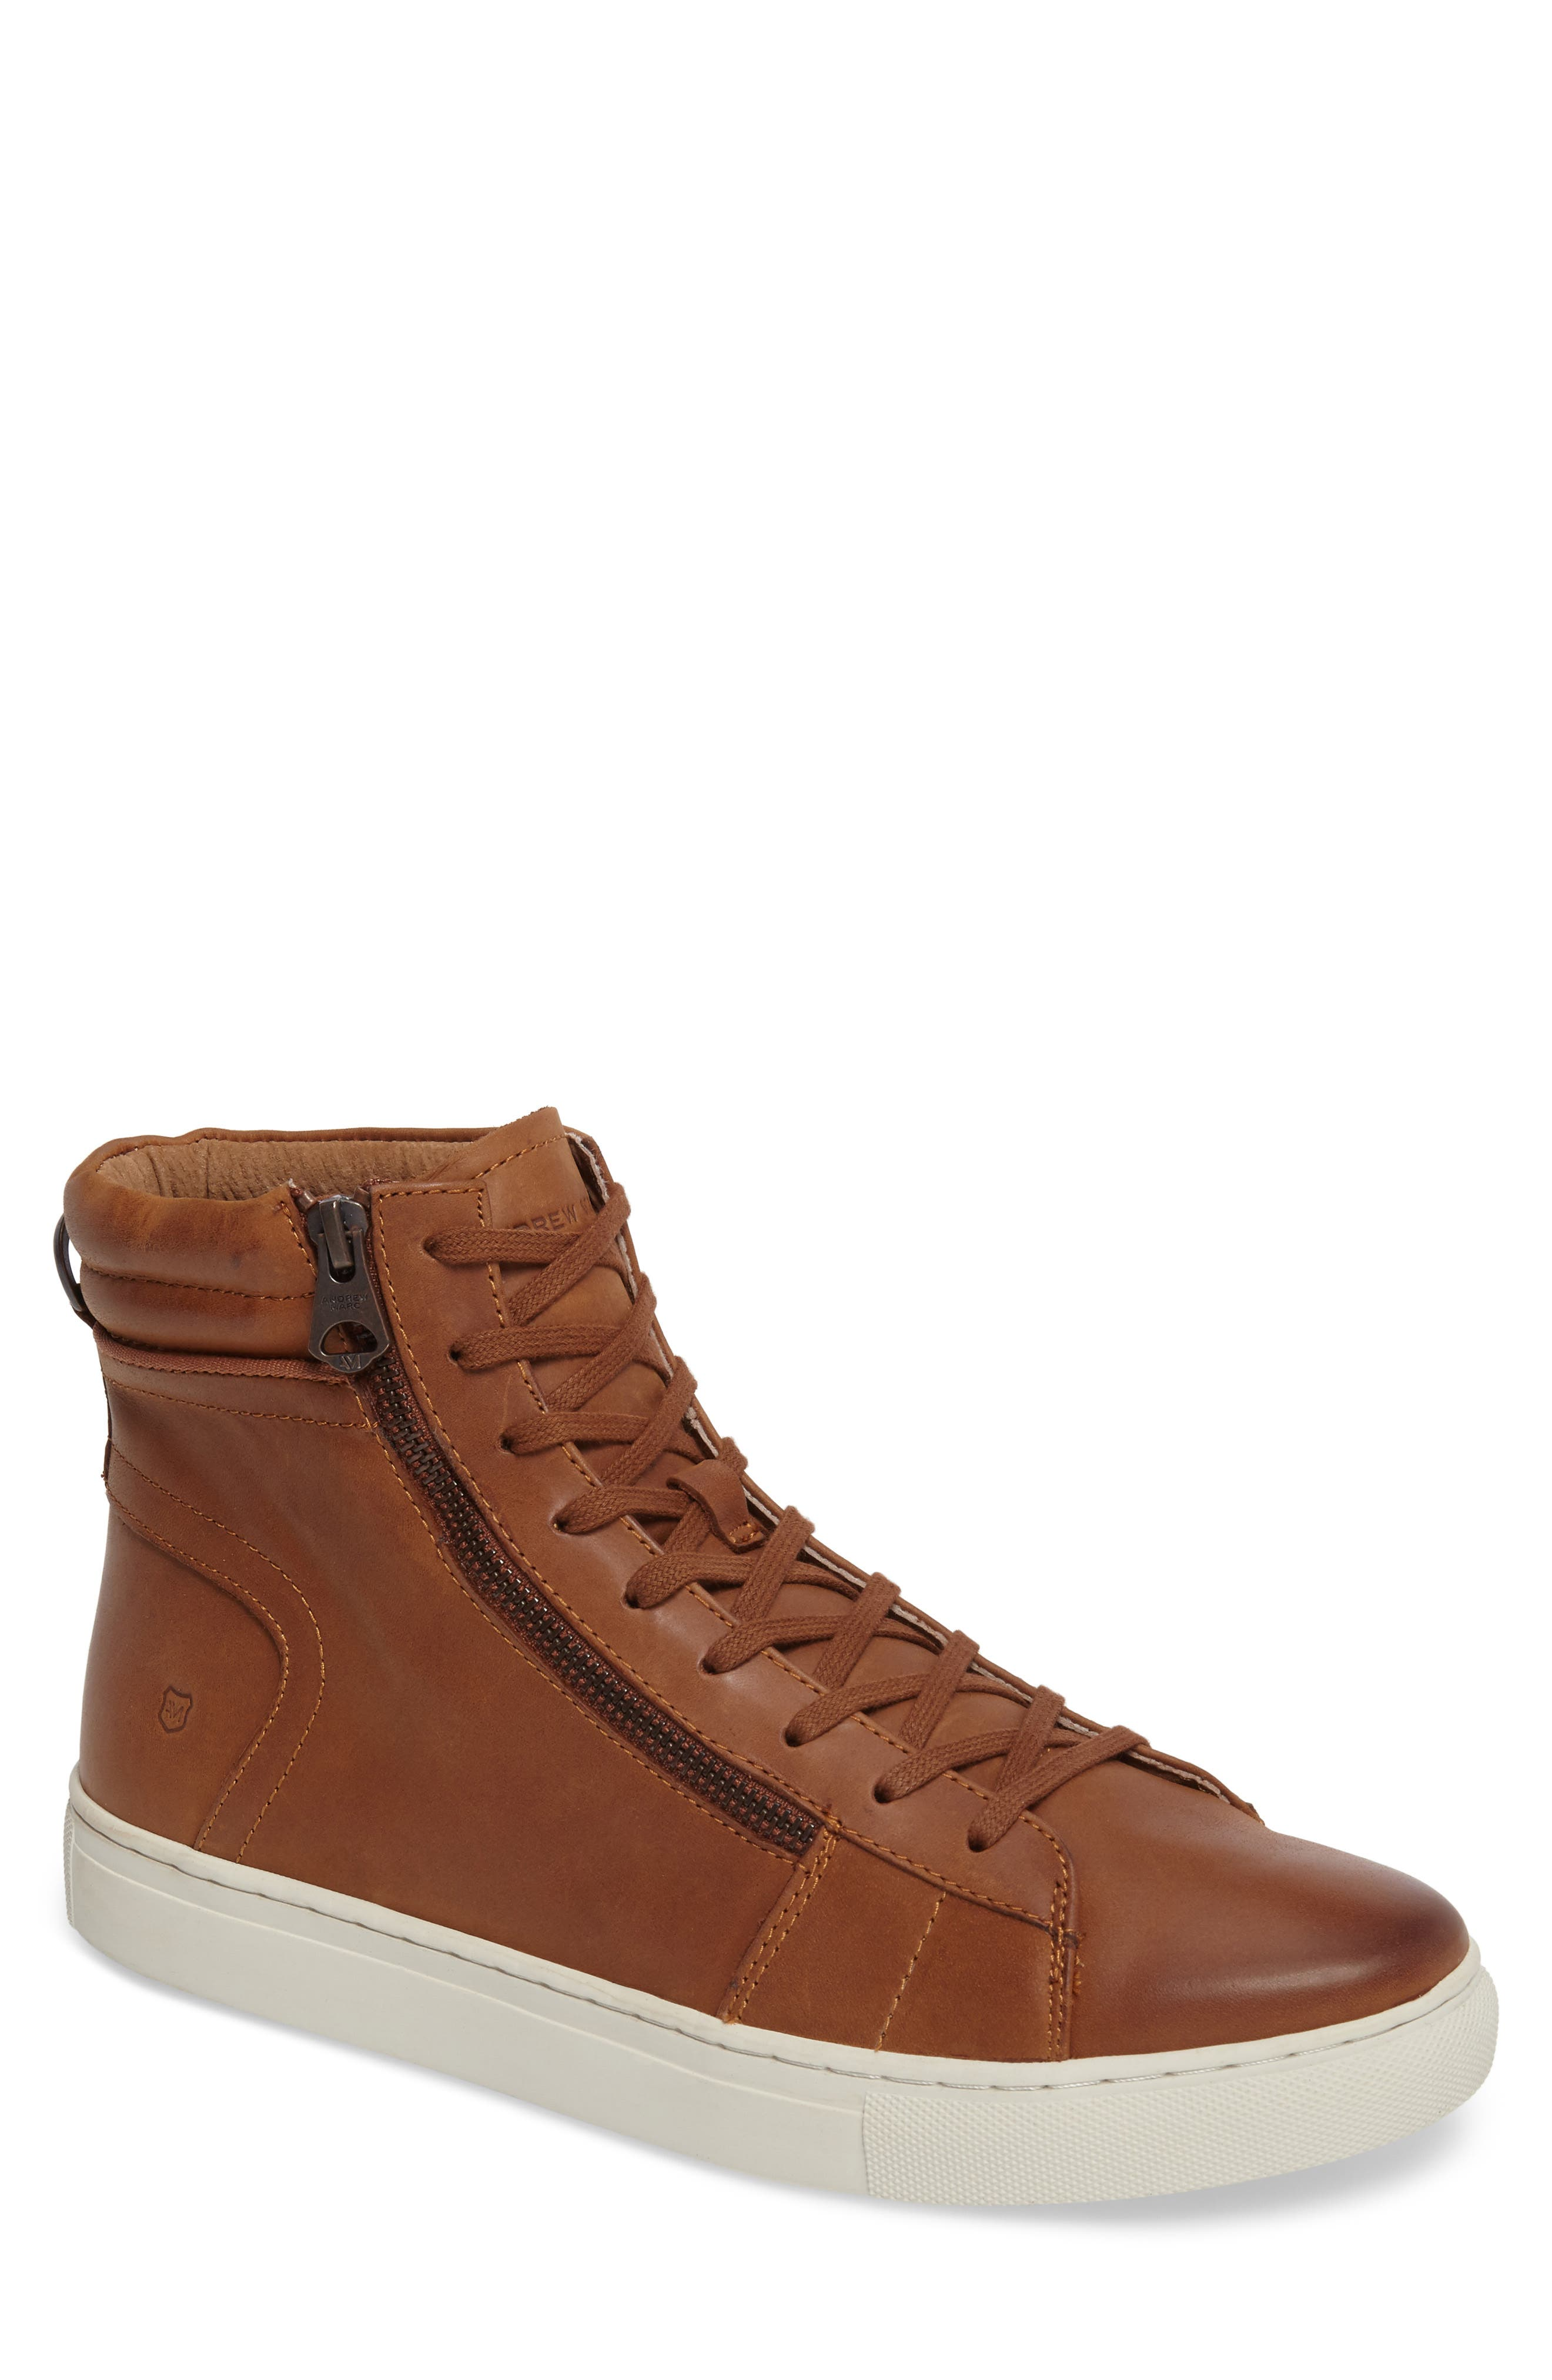 Remsen Sneaker,                             Main thumbnail 1, color,                             Whiskey/ Snow White Leather